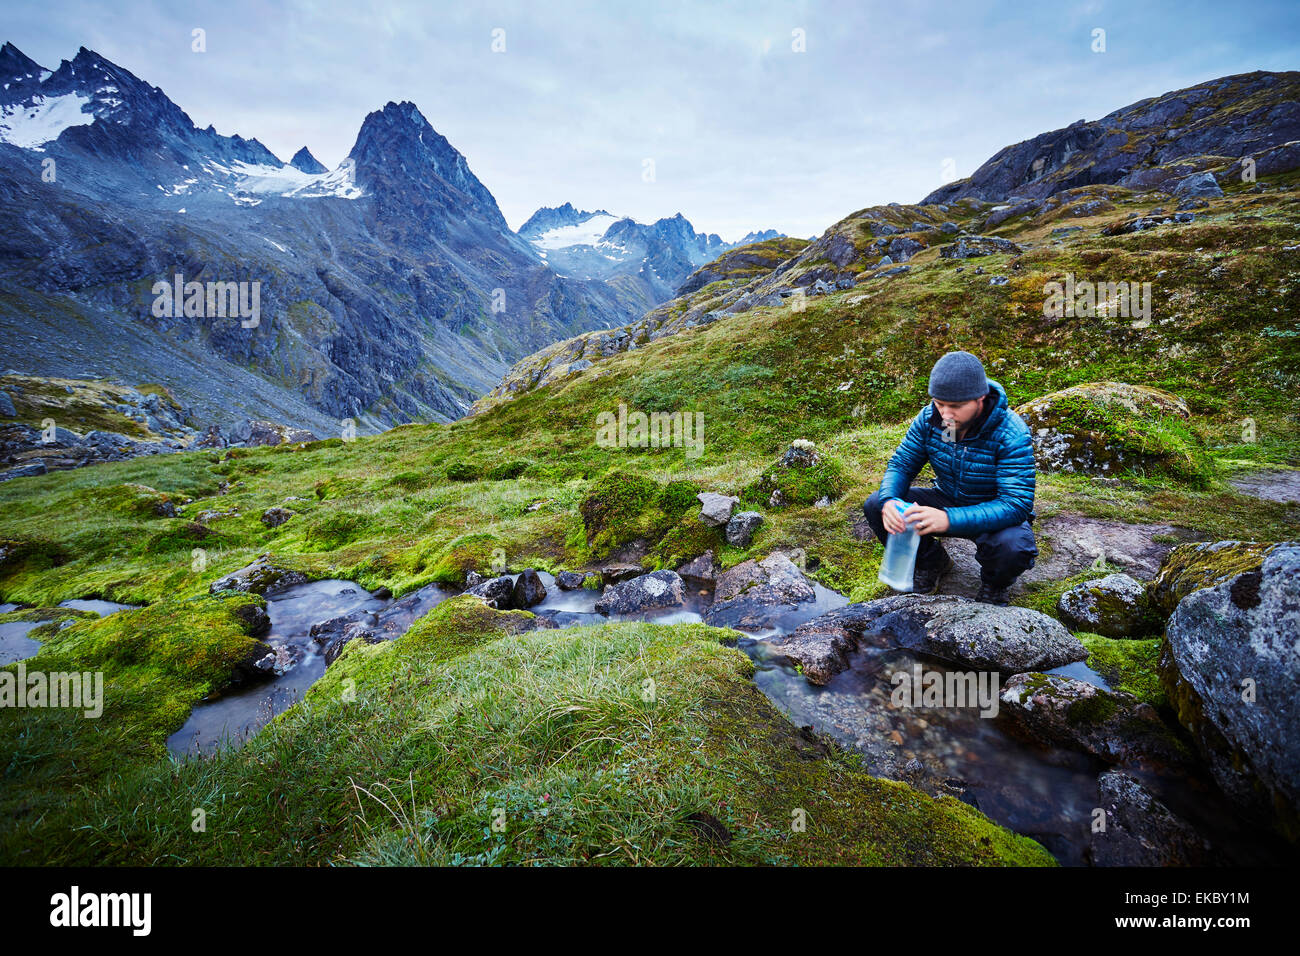 Male hiker filling water bottle from stream, Palmer, Alaska, USA - Stock Image